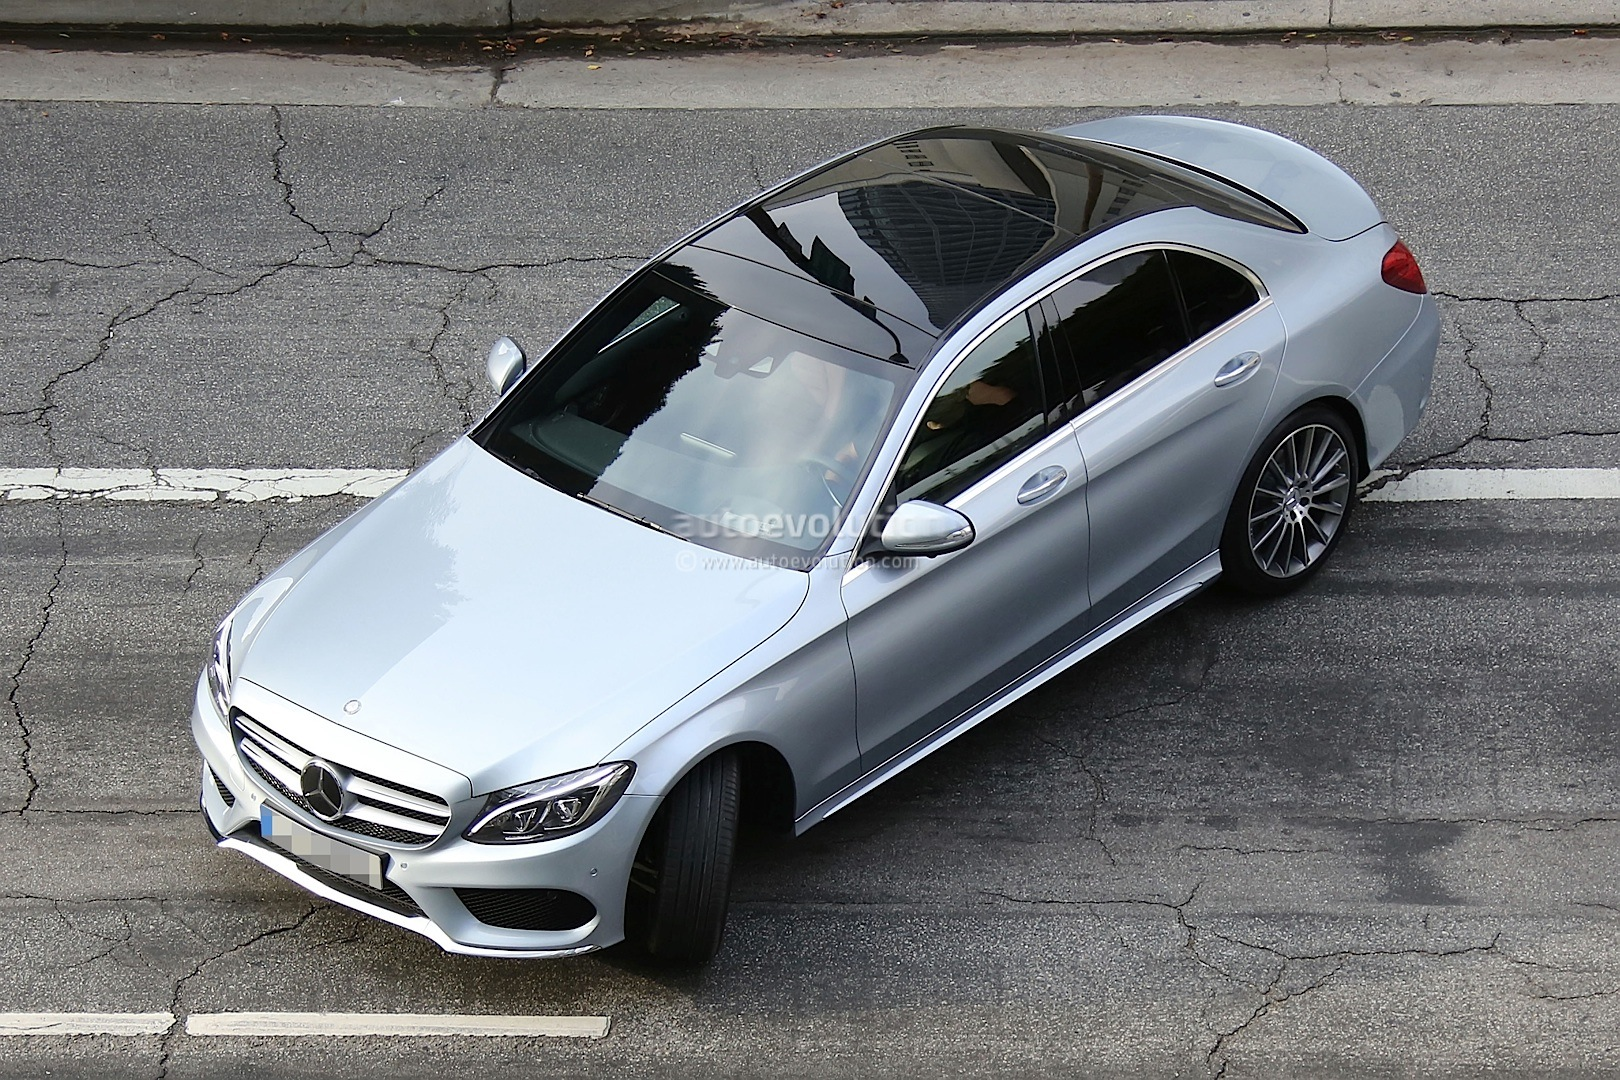 2015 Mercedes-Benz C 220 BlueTec W205 vs 2014 C 220 CDI W204